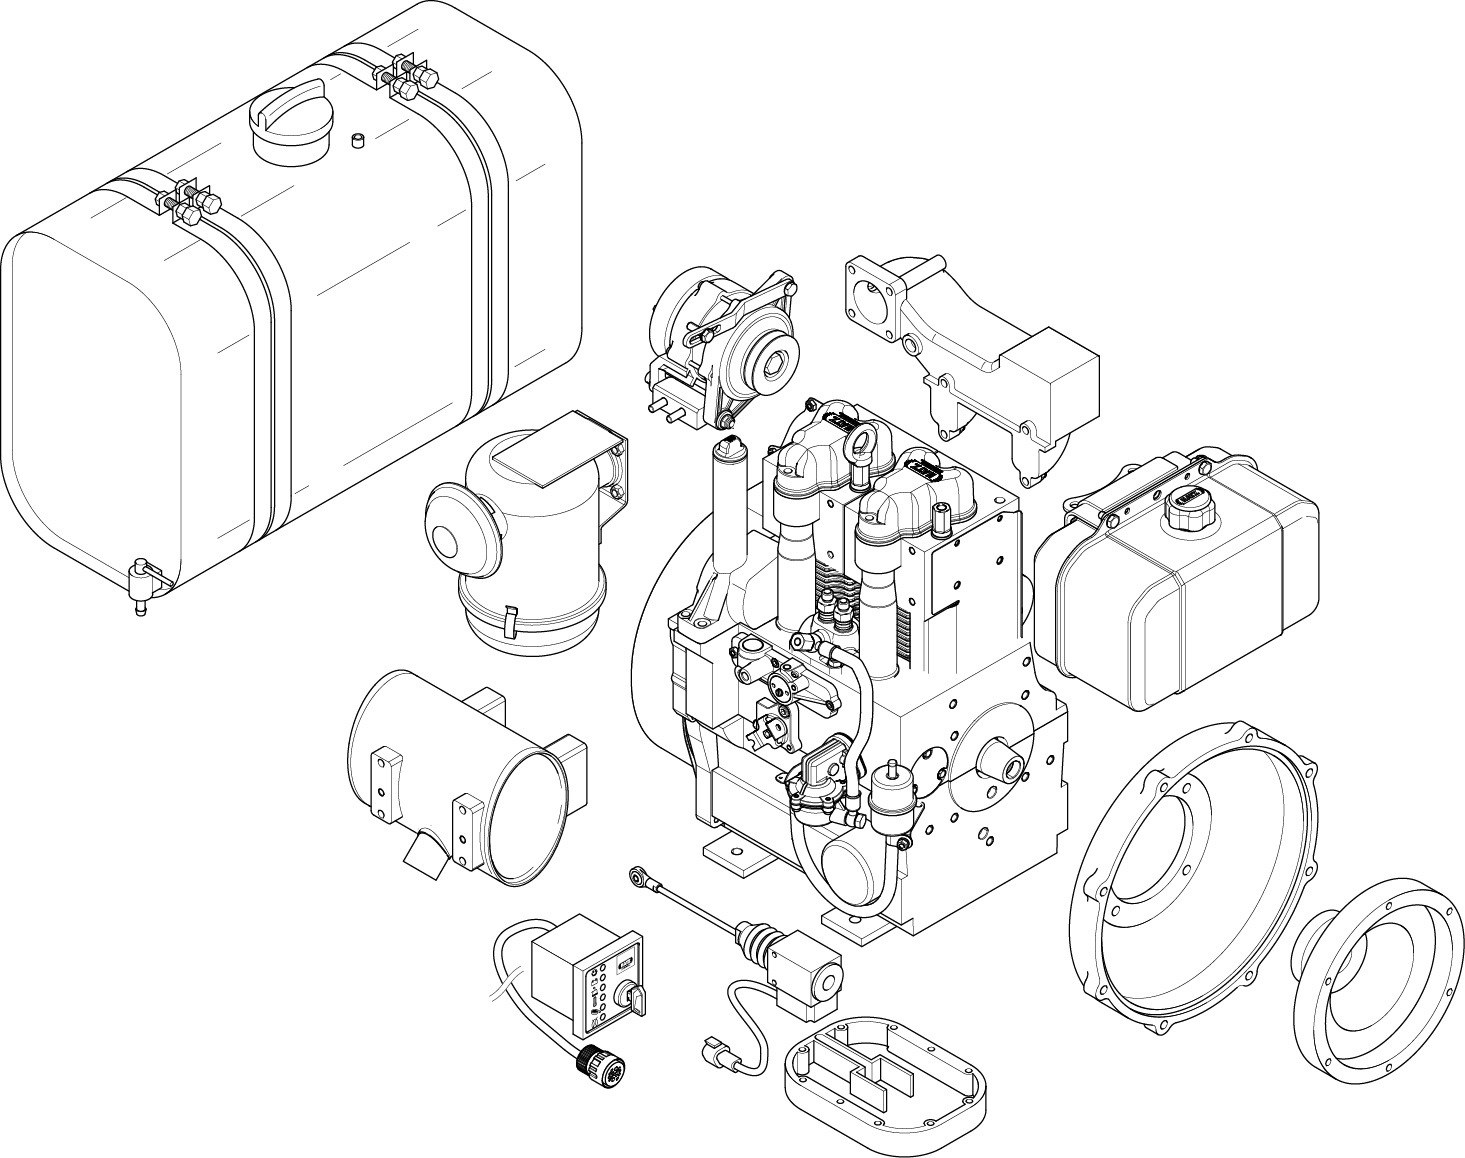 Hatzsel Engine Wiring Diagram